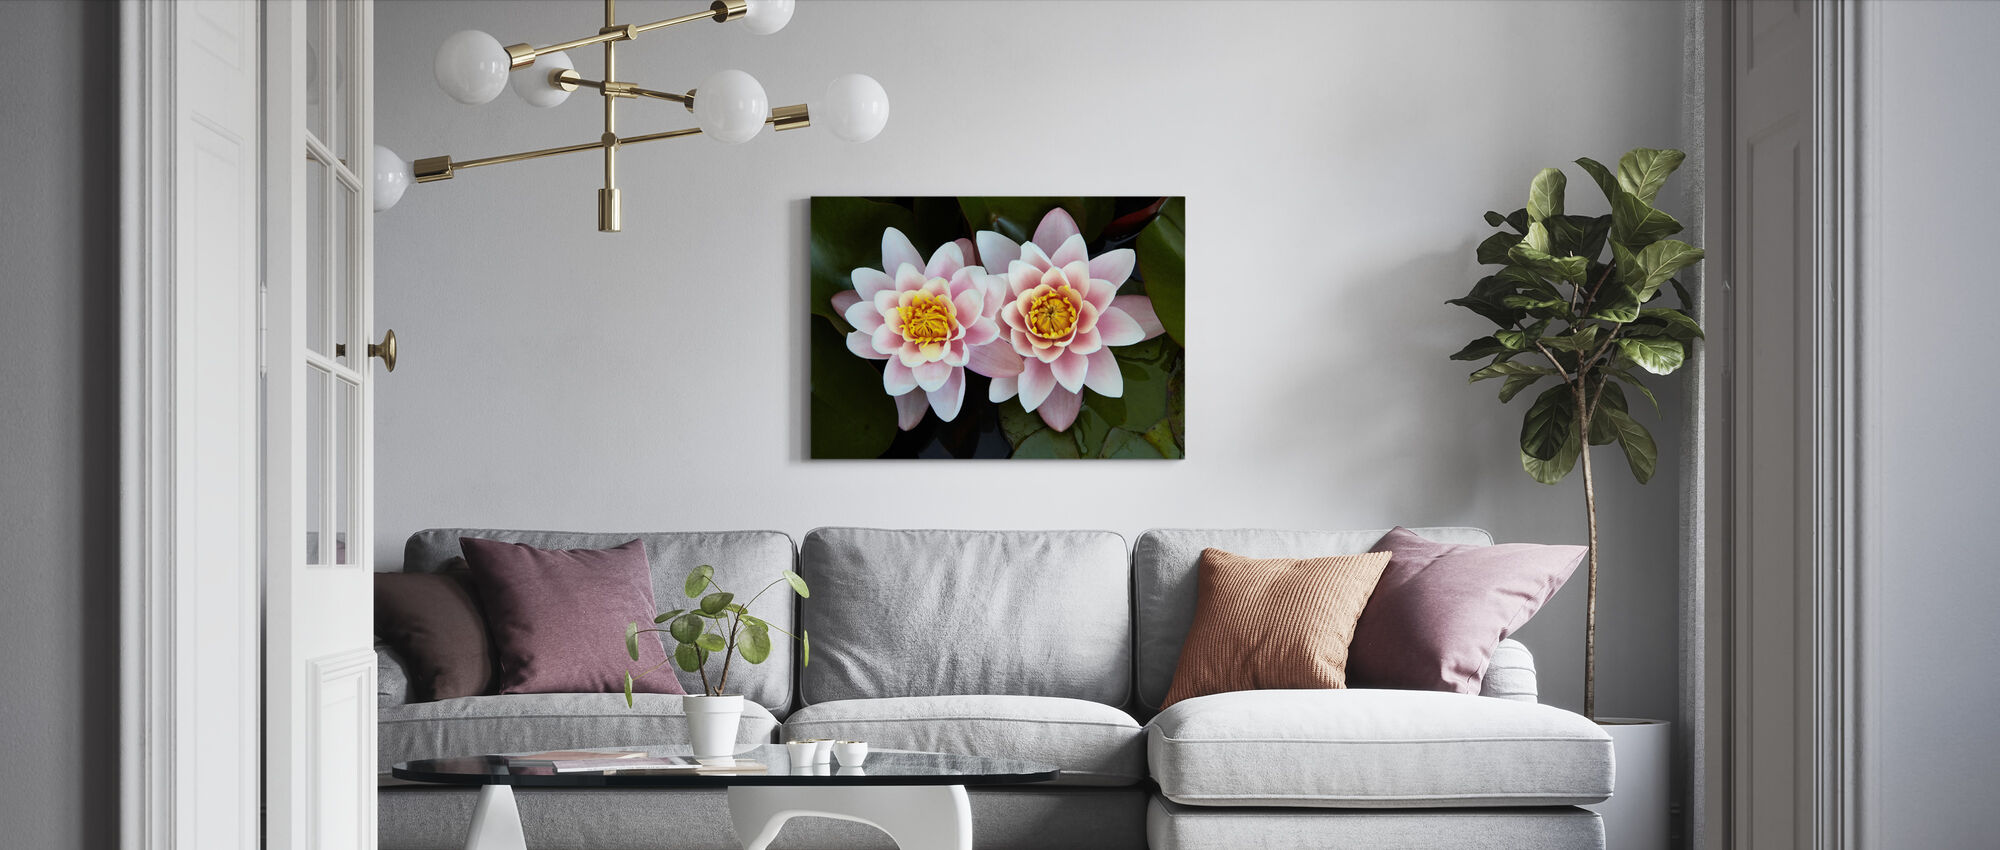 Pair of Water Lilies - Canvas print - Living Room